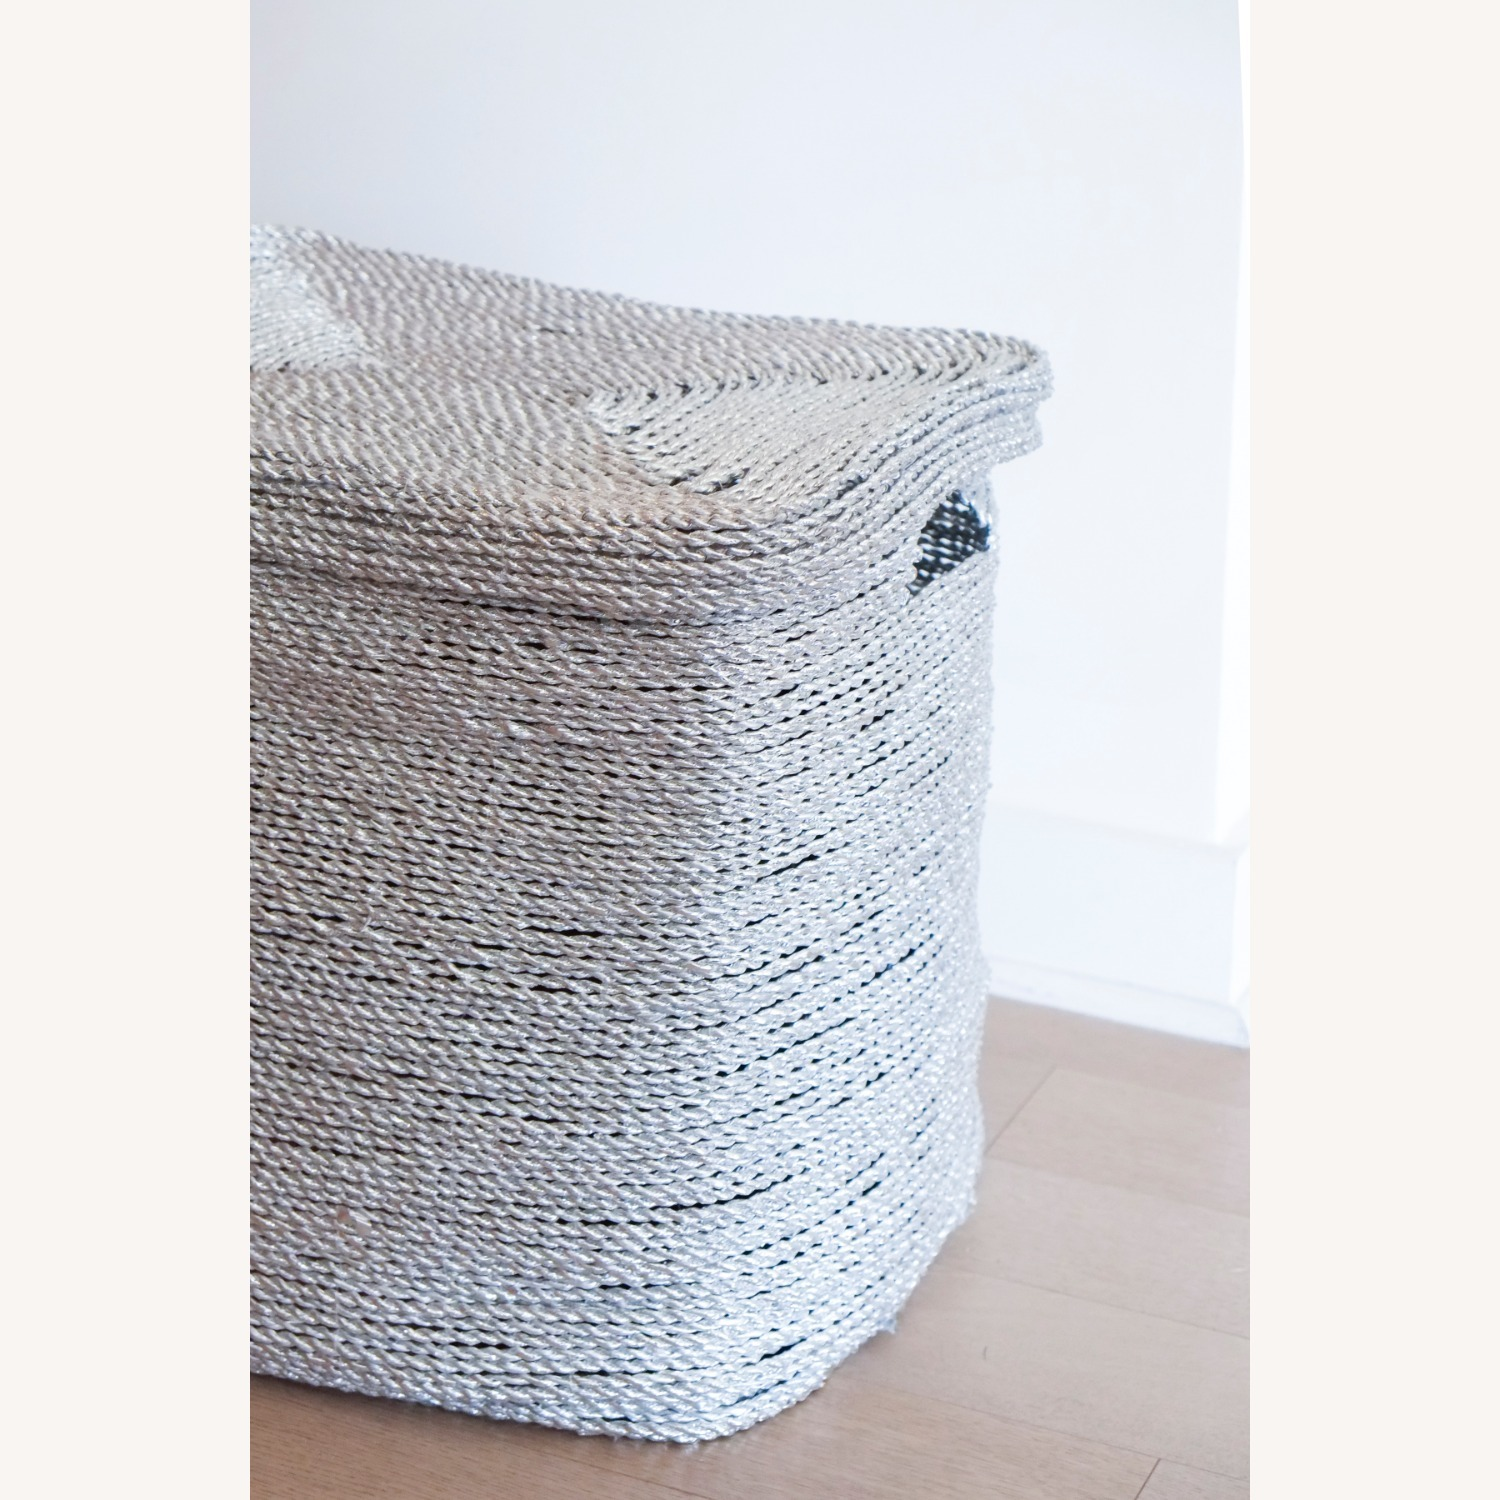 West Elm Metallic Silver Woven Hamper - image-3